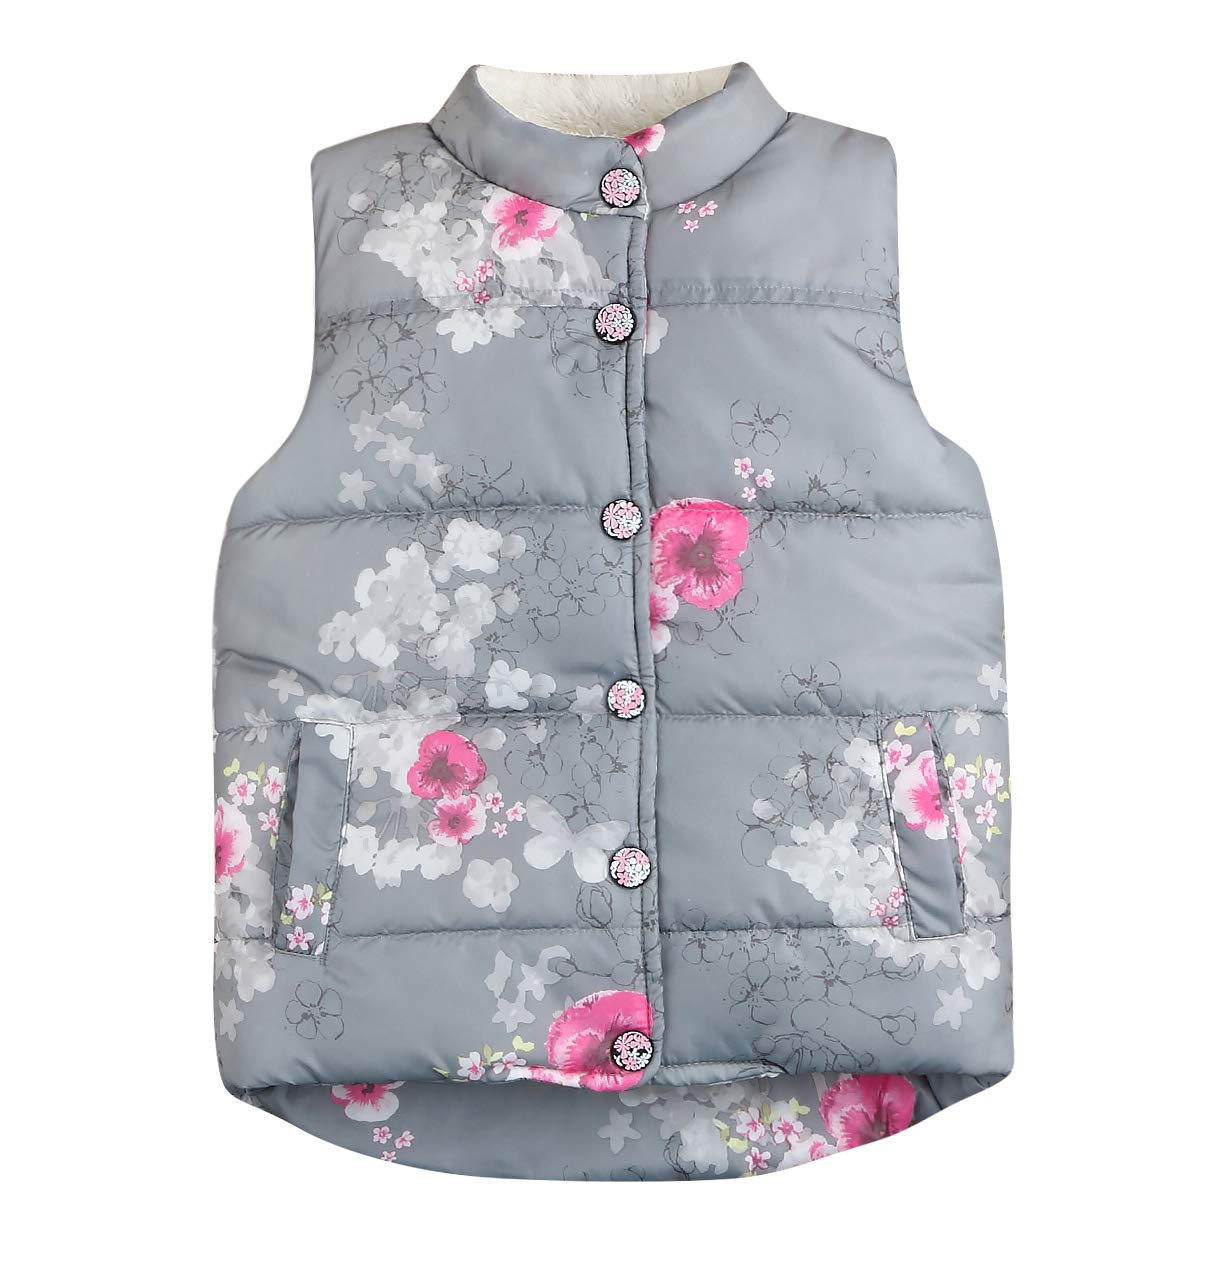 Younger star Little Girls Vests Outerwear Cute Floral Faux Fur Jacket Lightweight Warm Winter Clothes (Grey, 5 T)